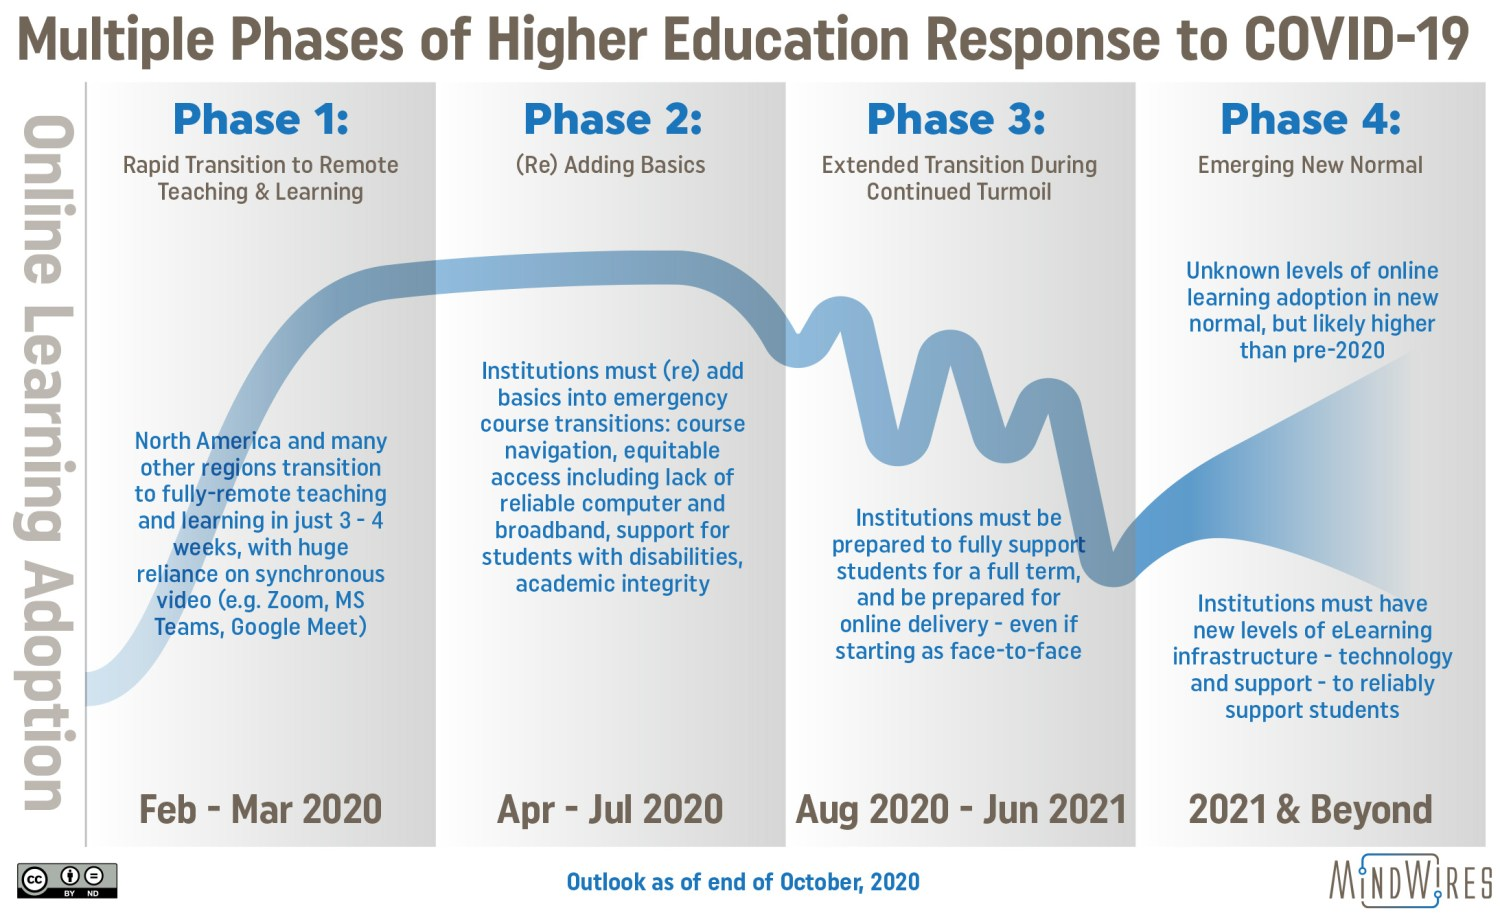 Four phases of higher ed response to Covid-19, from rapid transition in Spring 20 thru new normal in late 2021 and beyond